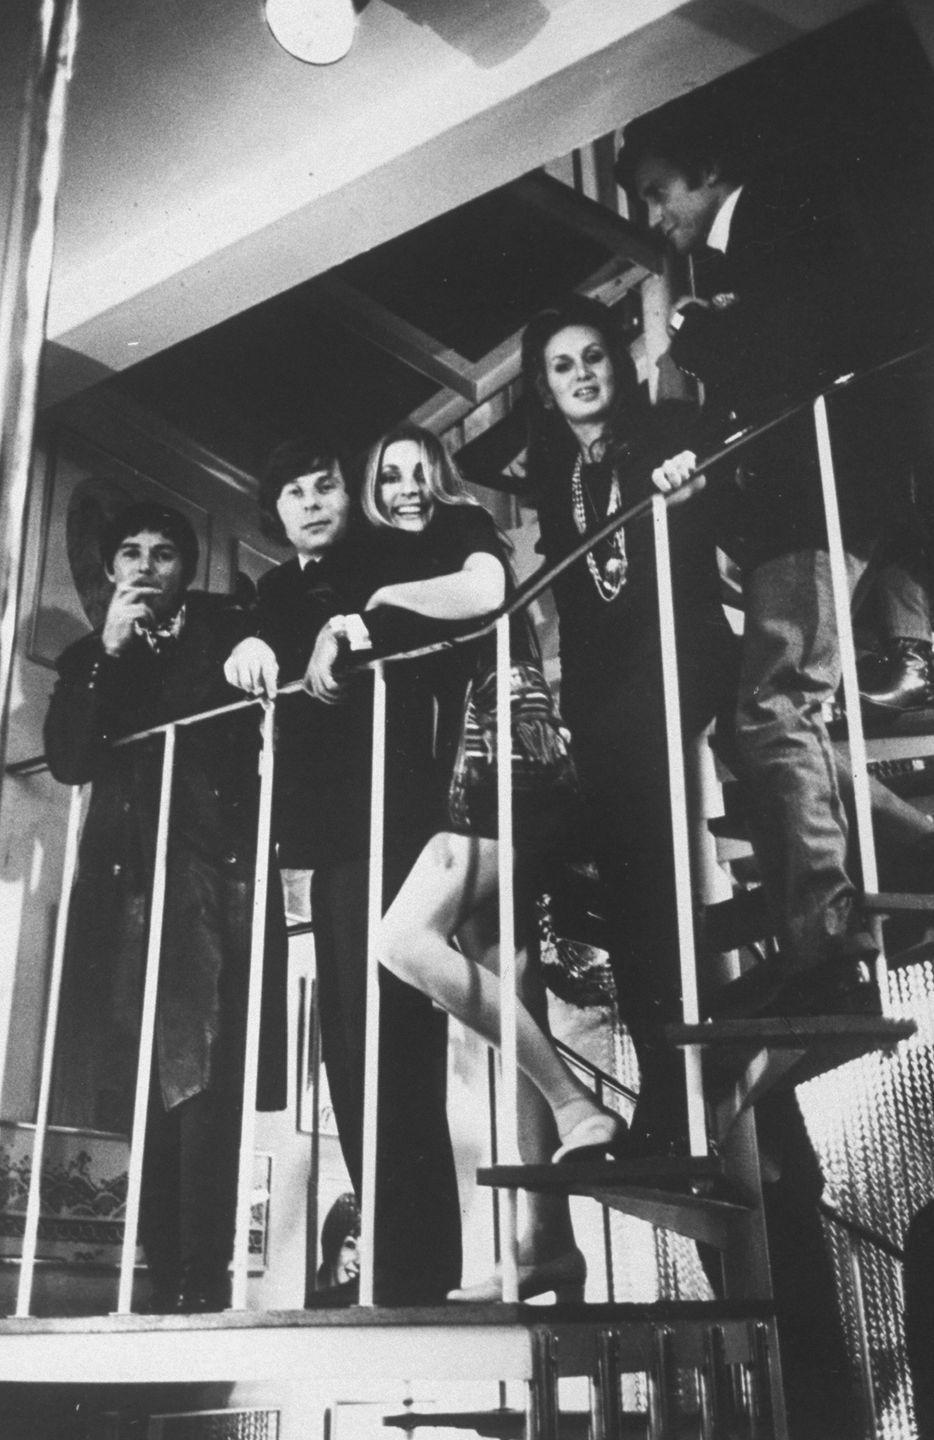 <p>Tate loved to host friends and parties. The actress (center) and her husband, Polanski, pose on the spiral staircase in their London apartment with friends, which included Jay Sebring (left). </p>